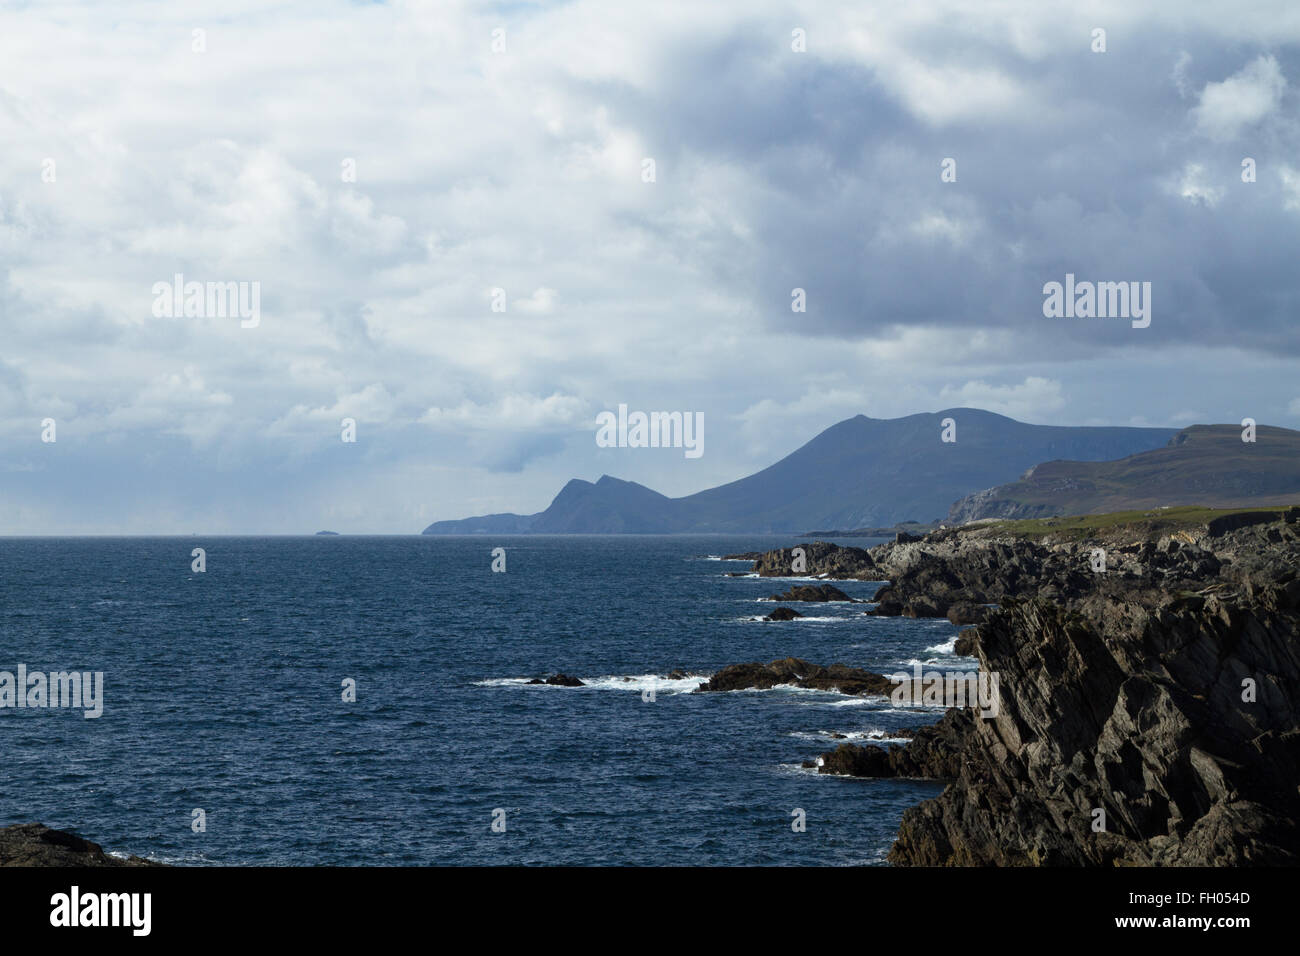 Achill, Co. Mayo, Ireland - Stock Image